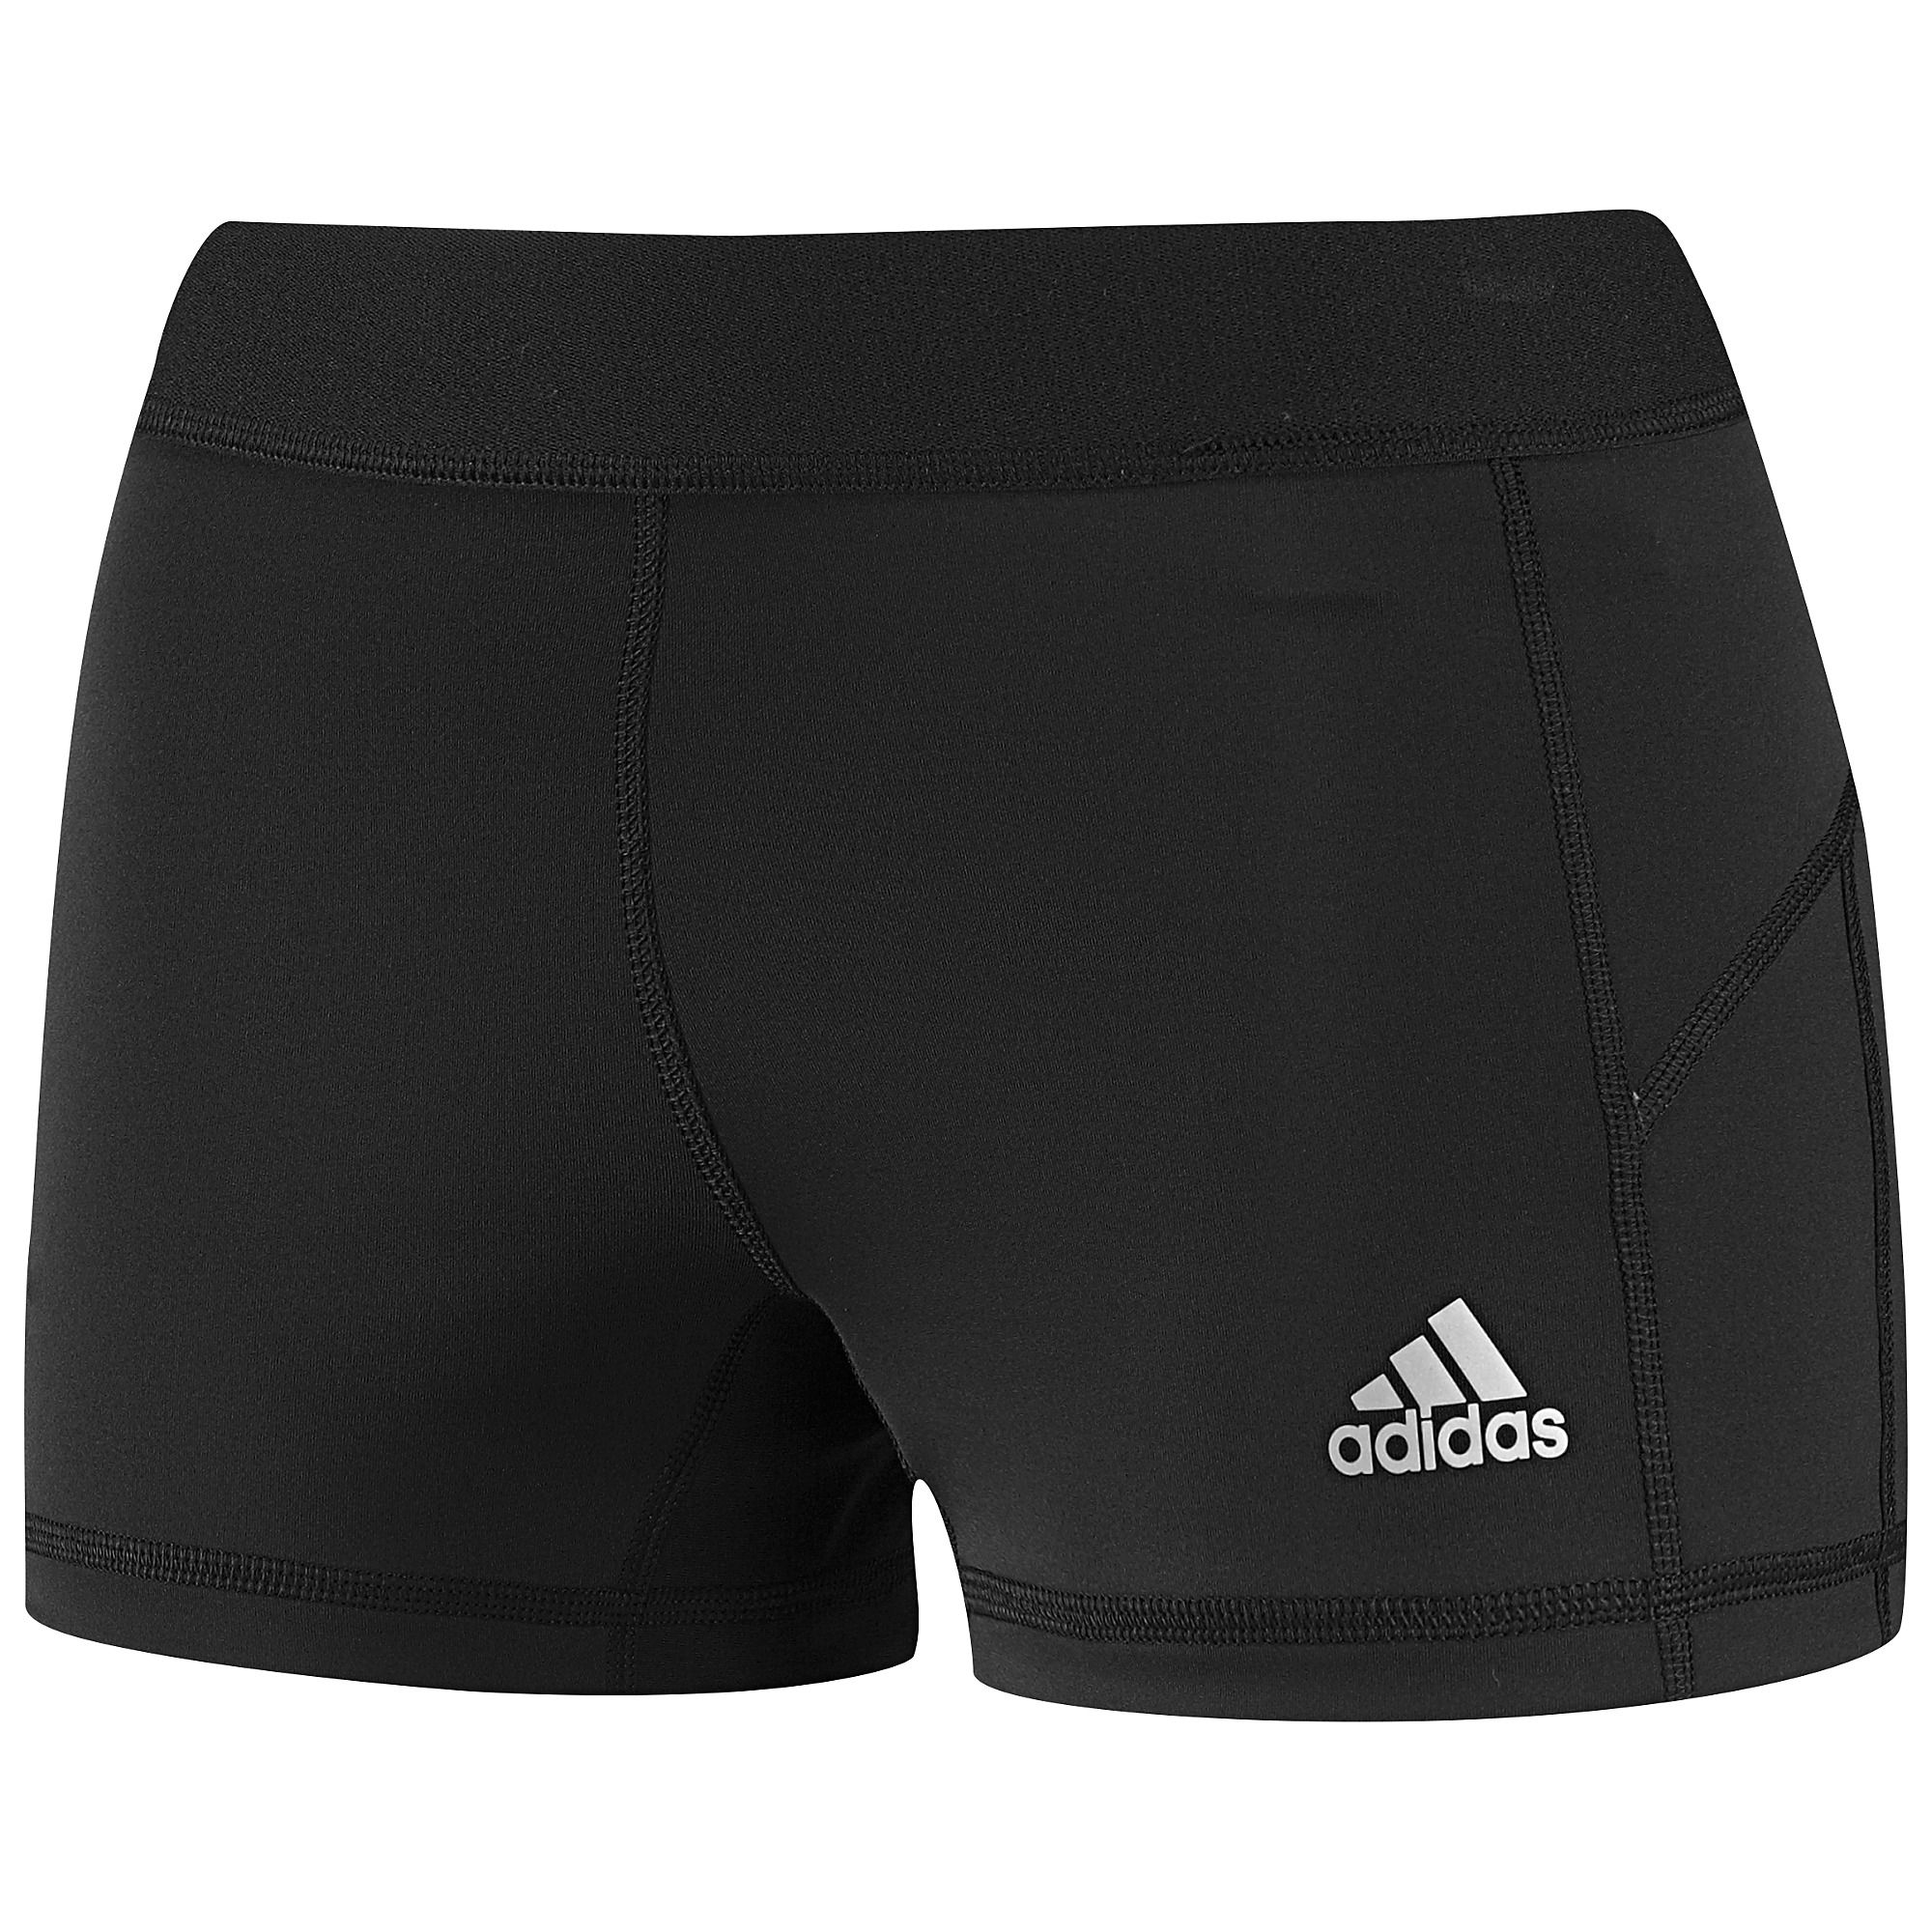 Slip on these second skin women's shorts and prepare to feel